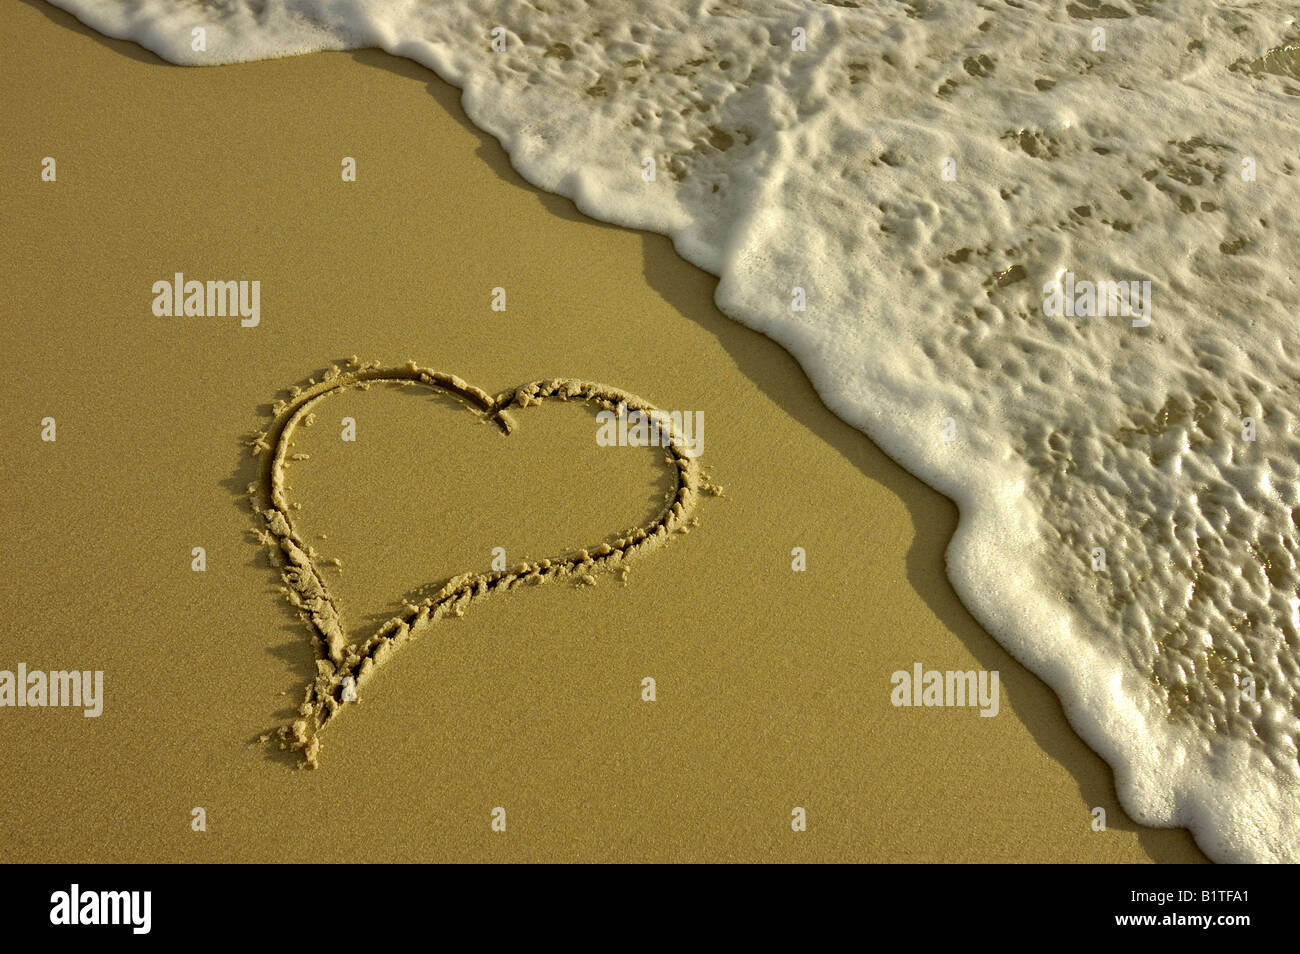 A heart drawn in the sand about to be washed away by a wave. Taken in the low light of evening. - Stock Image